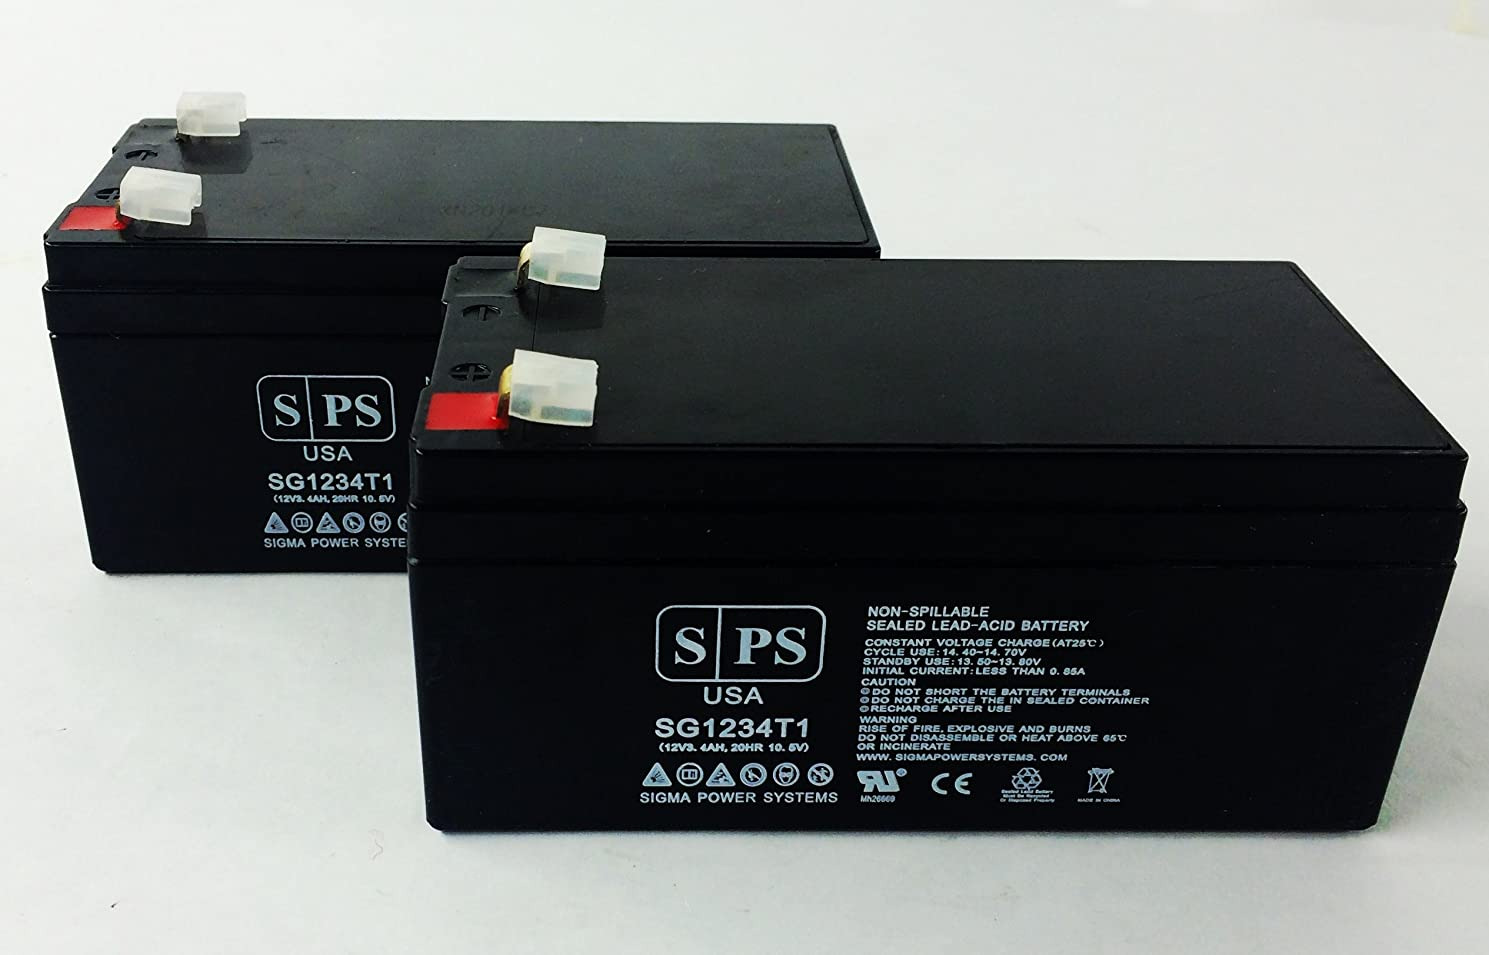 Replacement Battery for Care Monitoring Systems Inc. TELESTAT - SPS Brand (2 pack)